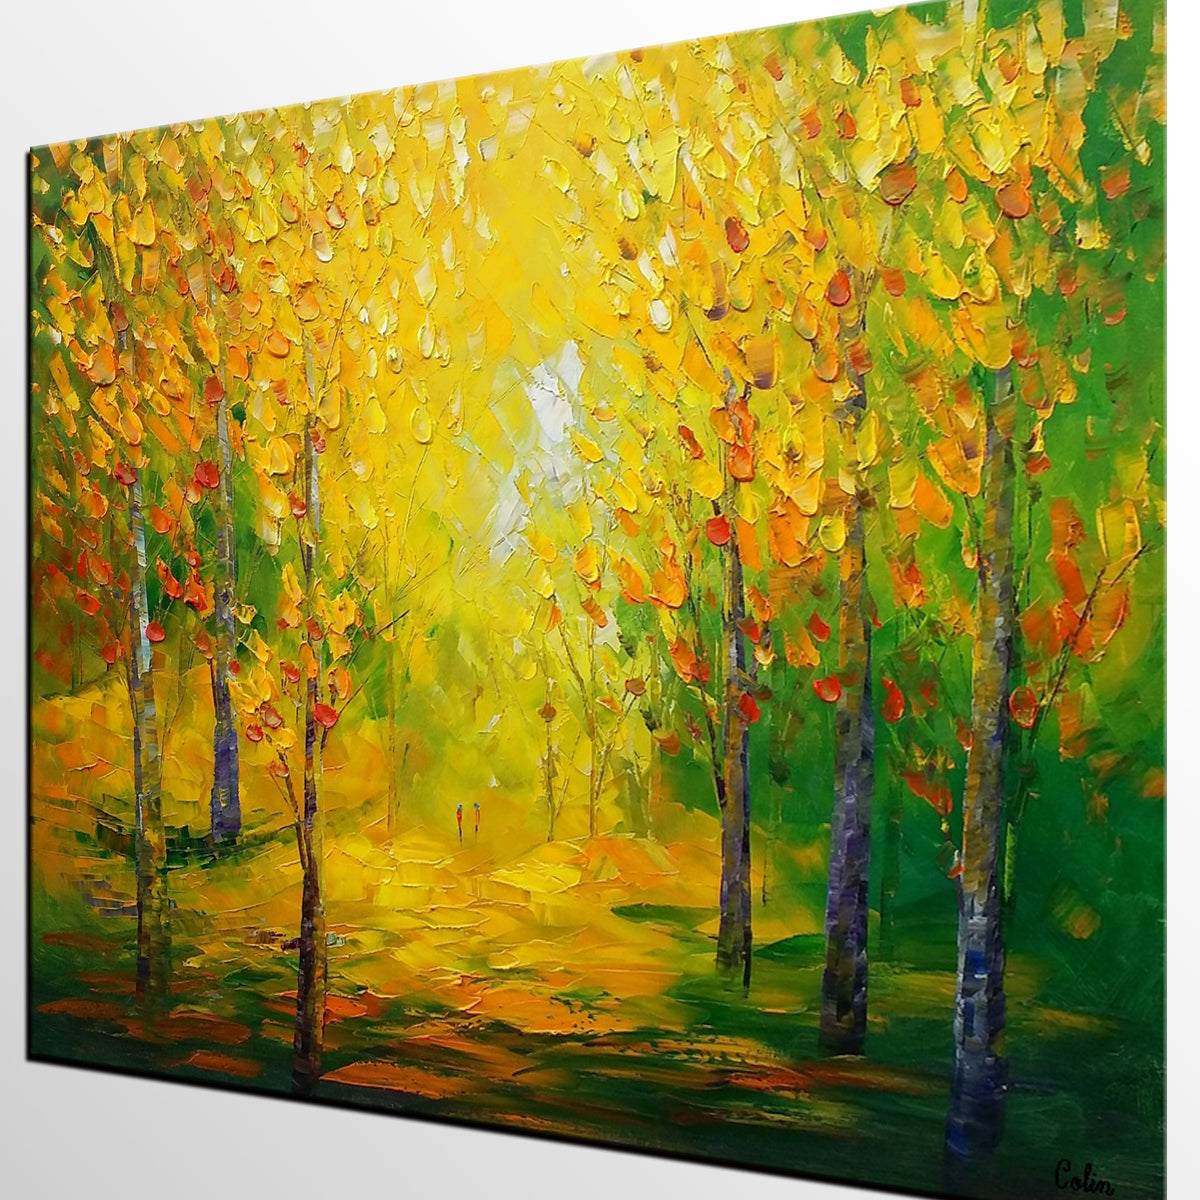 Abstract Art, Canvas Art, Landscape Painting, Rustic Wall Art, Oil Painting Canvas, Original Wall Art, Autumn Painting